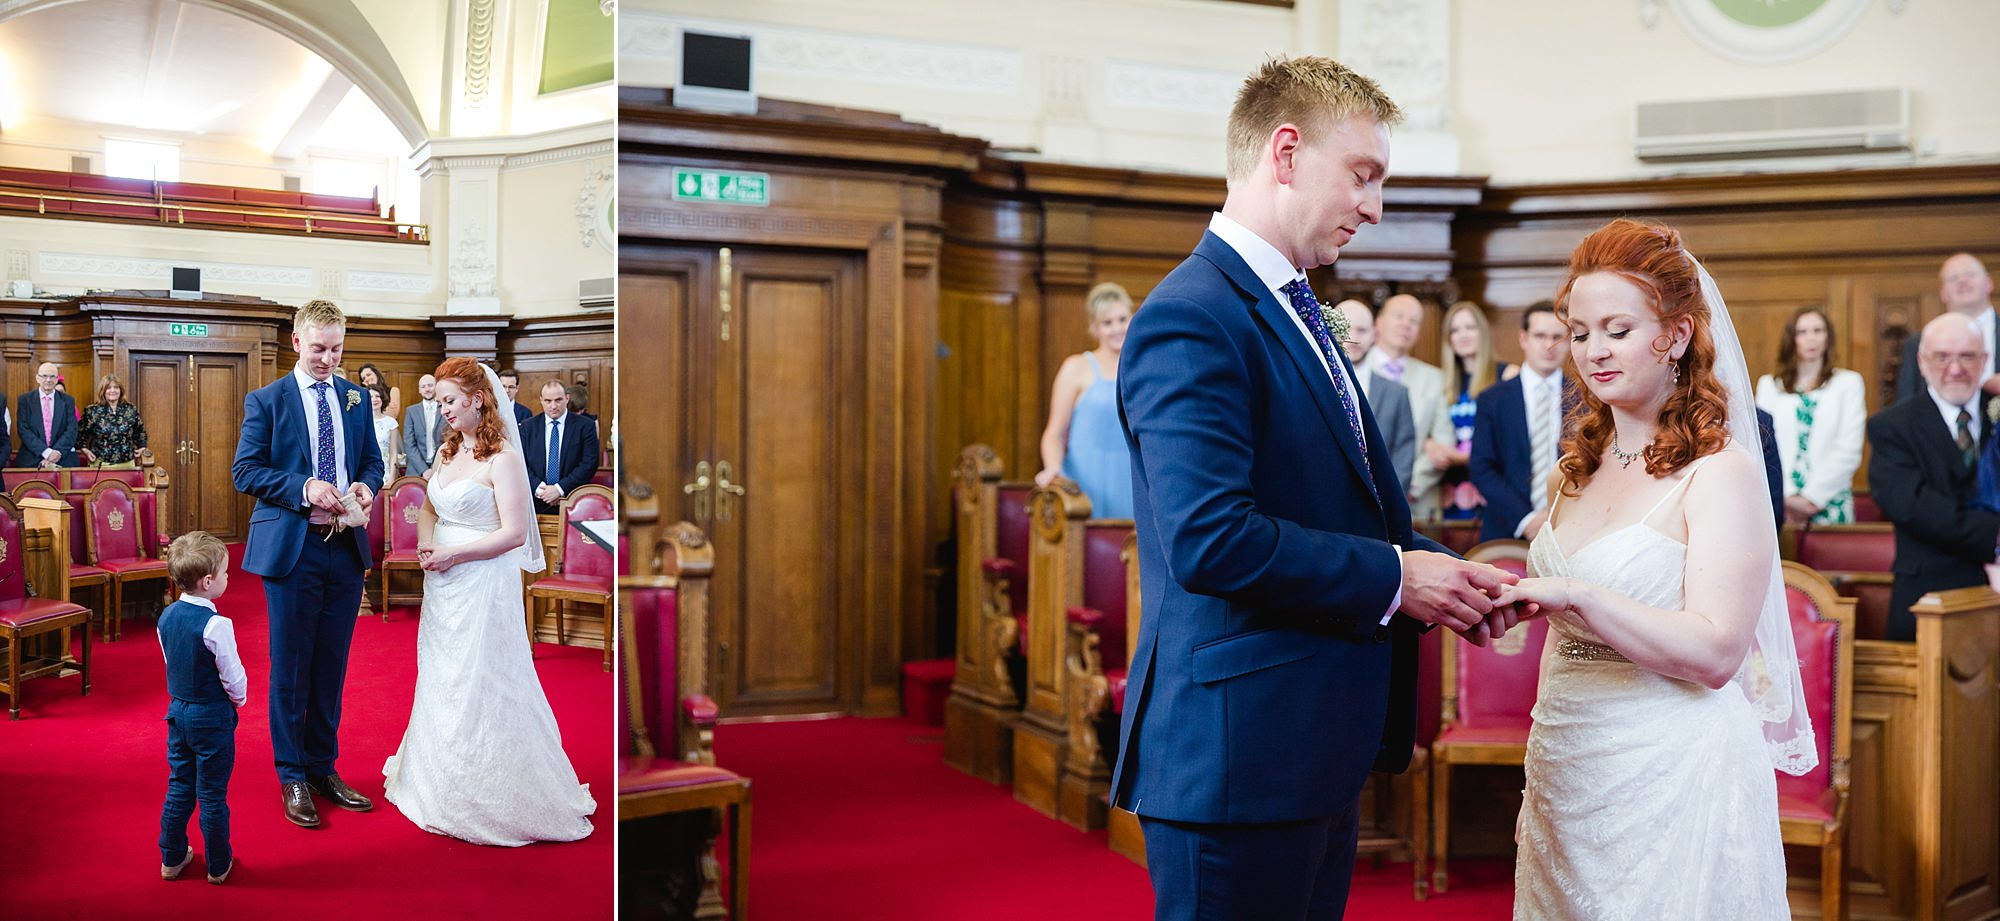 oyster shed wedding portrait of bride and groom at islington town hall ceremony